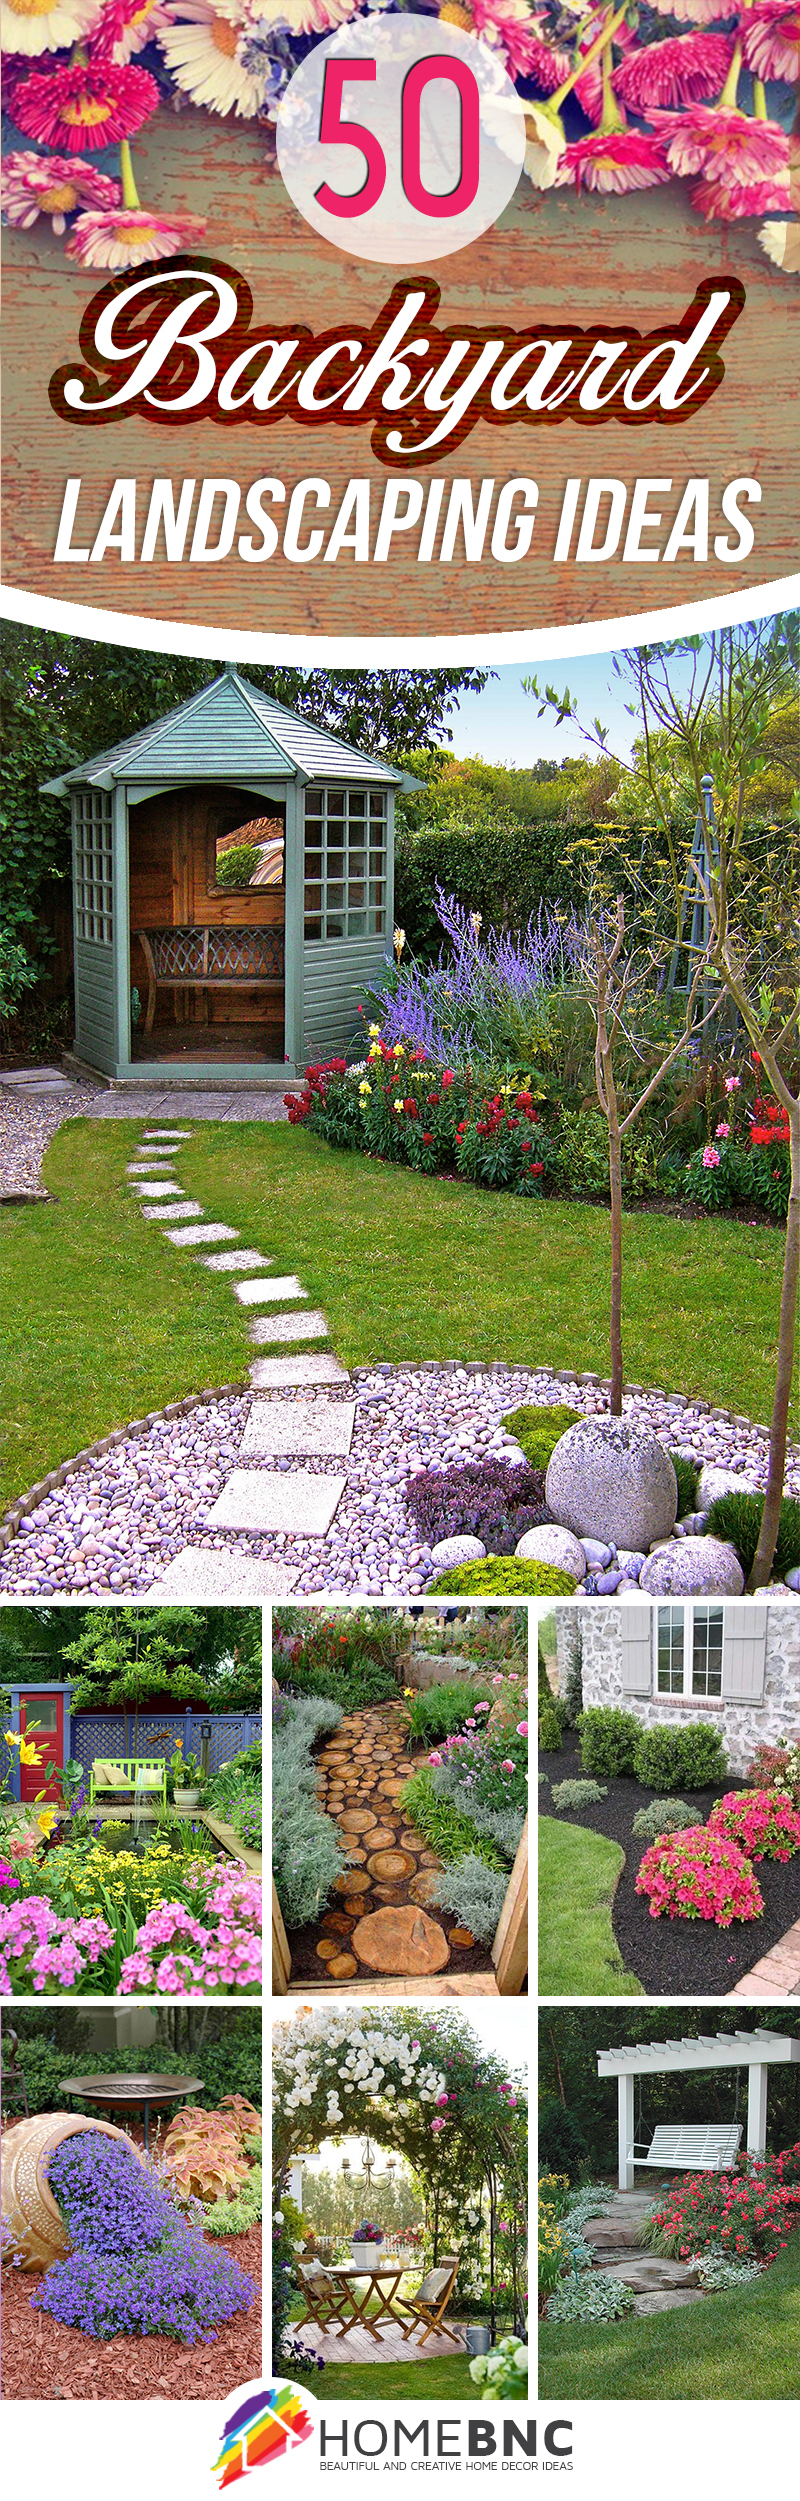 50 Best Backyard Landscaping Ideas And Designs In 2019 within 15 Genius Ways How to Upgrade Backyard Design Ideas